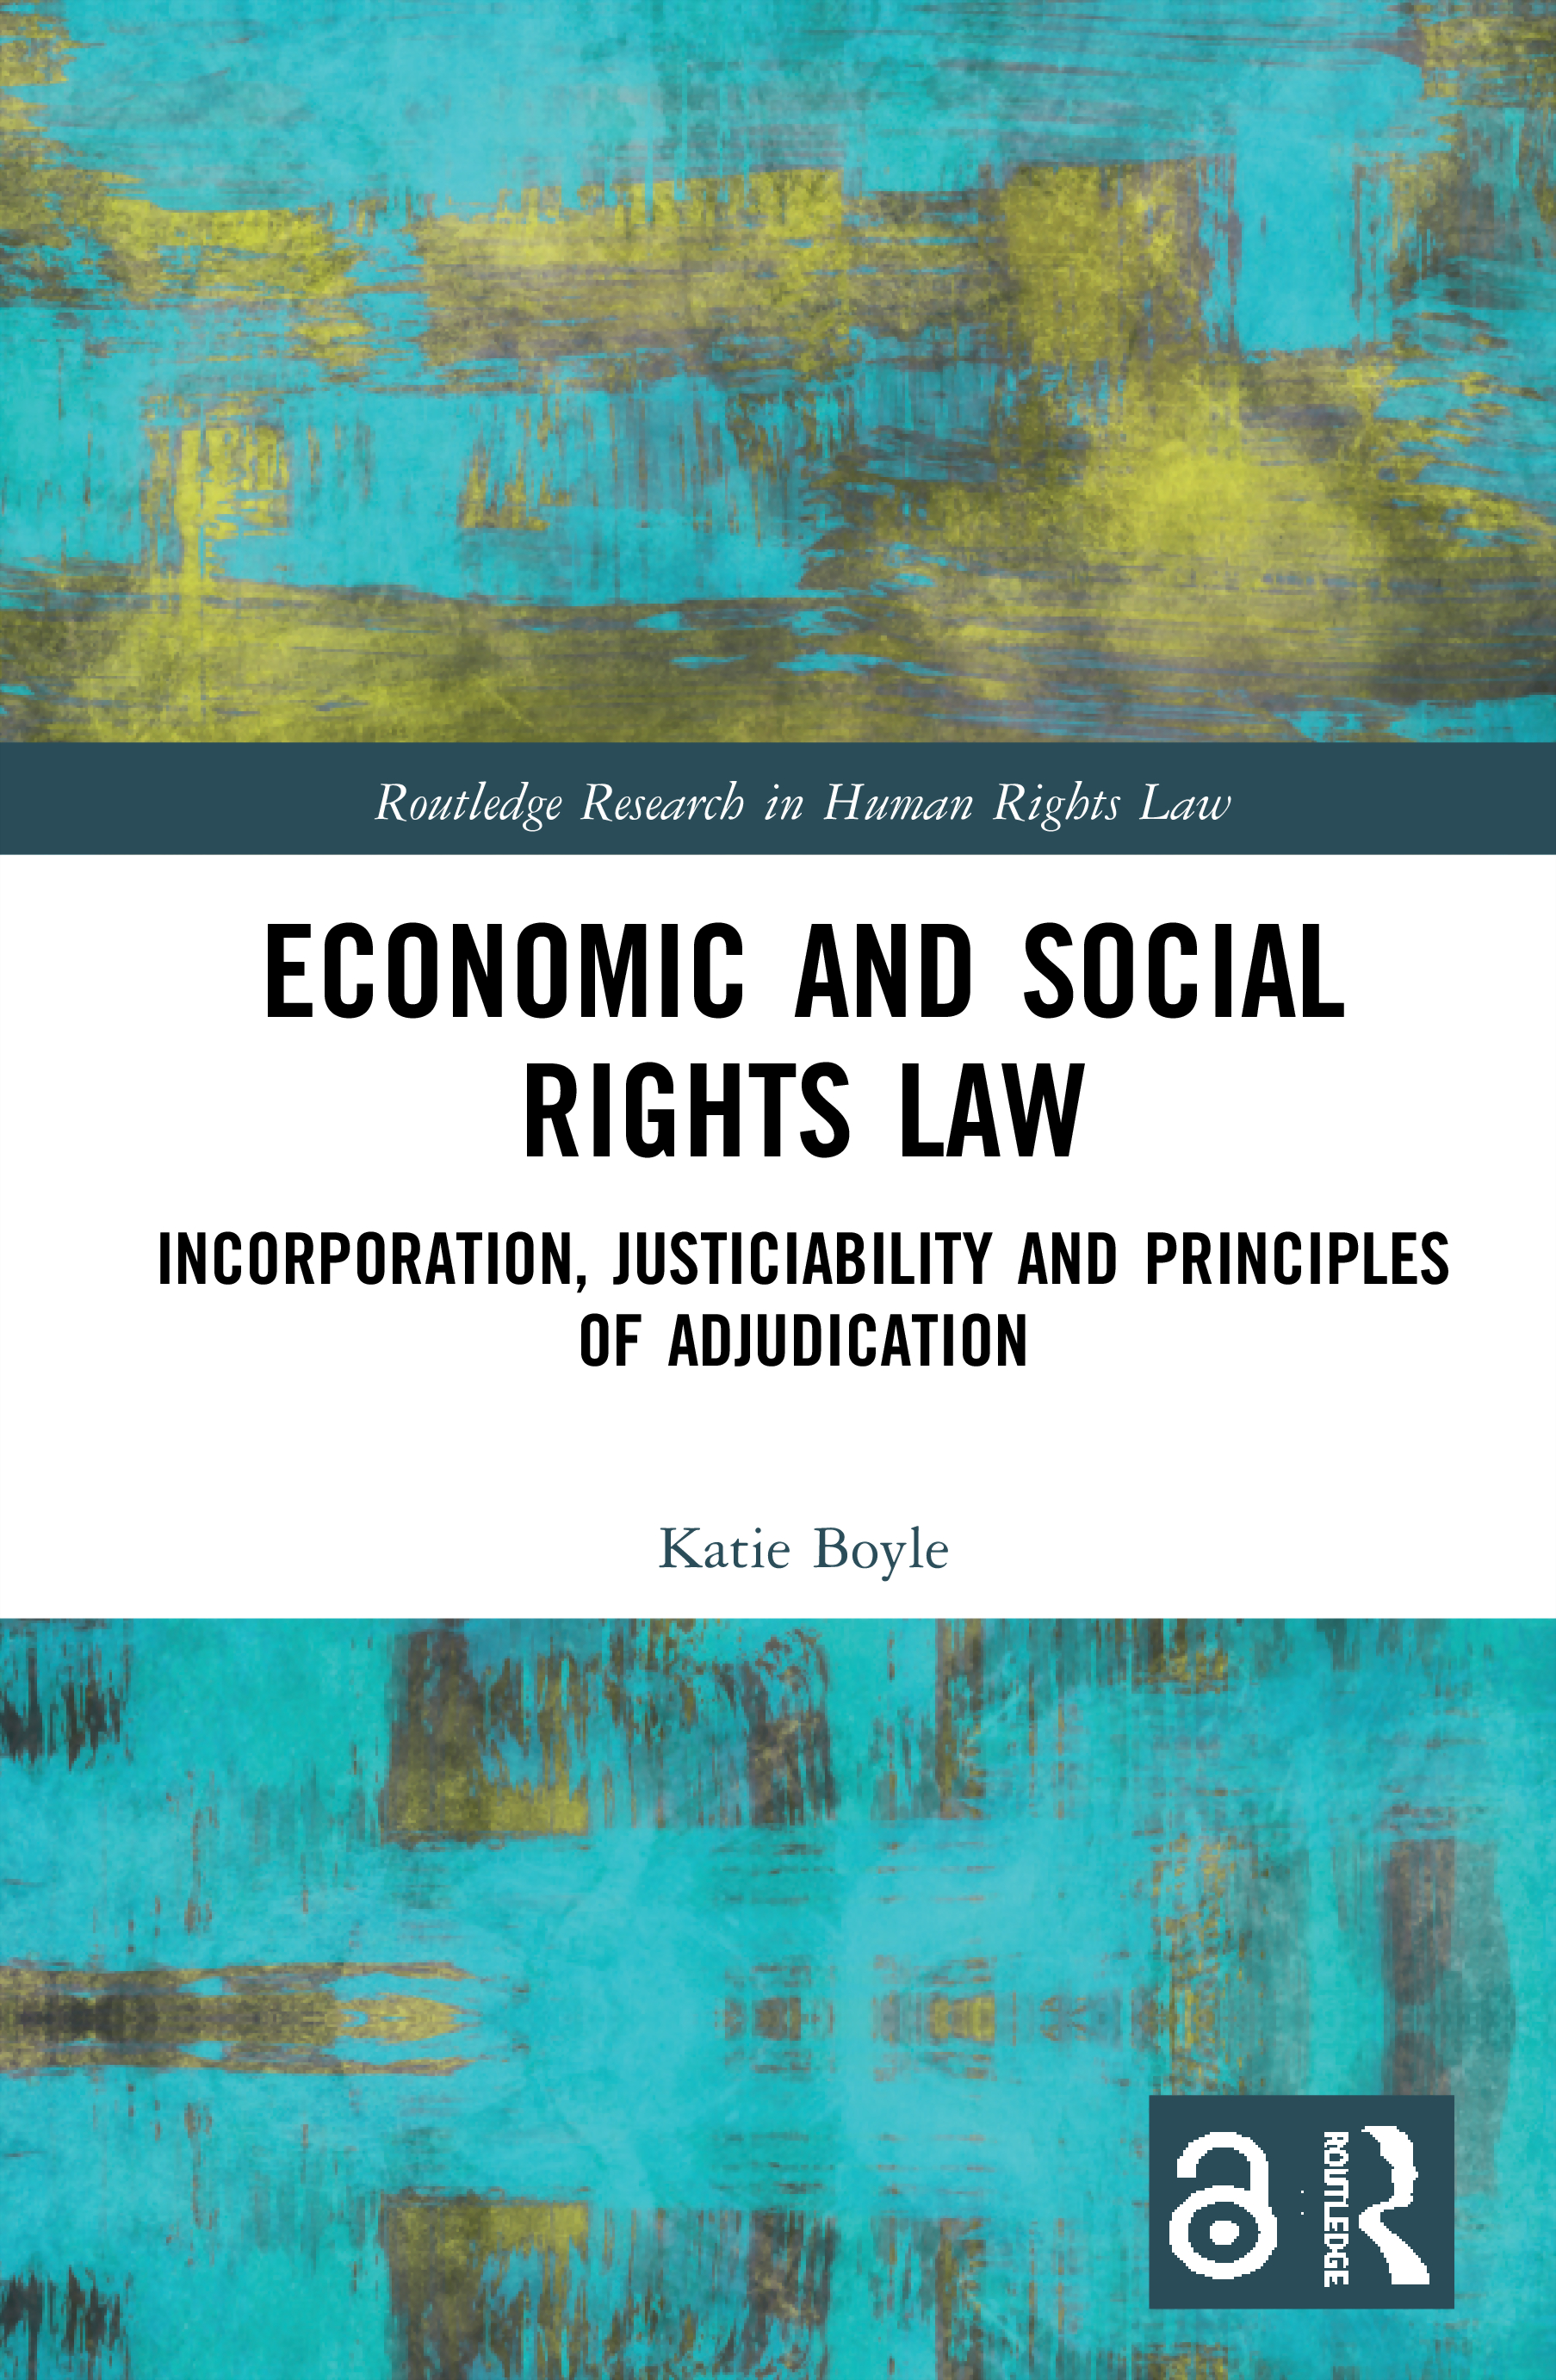 Economic and Social Rights Law: Incorporation, Justiciability and Principles of Adjudication book cover